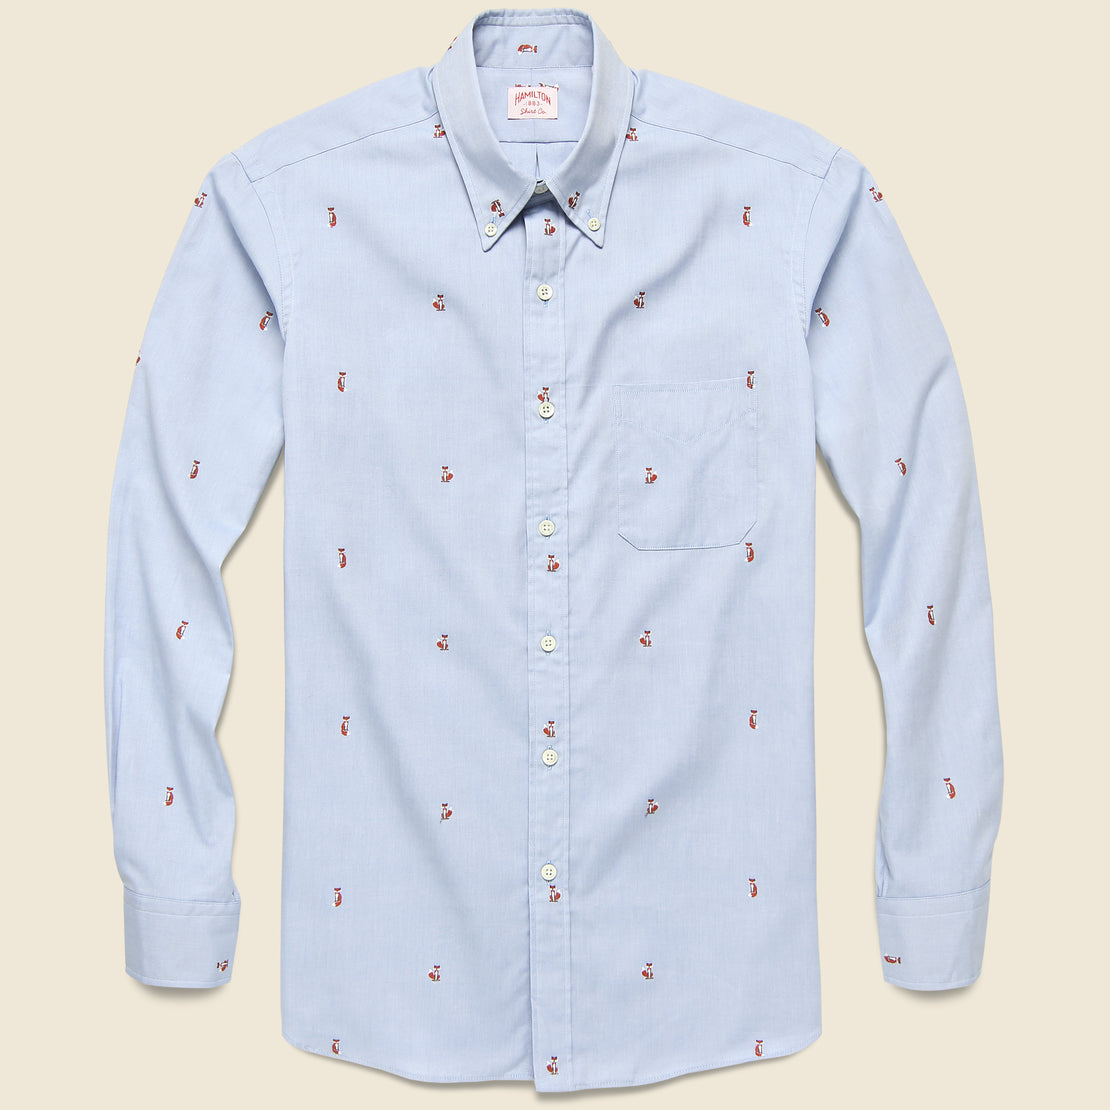 Hamilton Shirt Co. Fox Fil Coupé Oxford Shirt - Blue